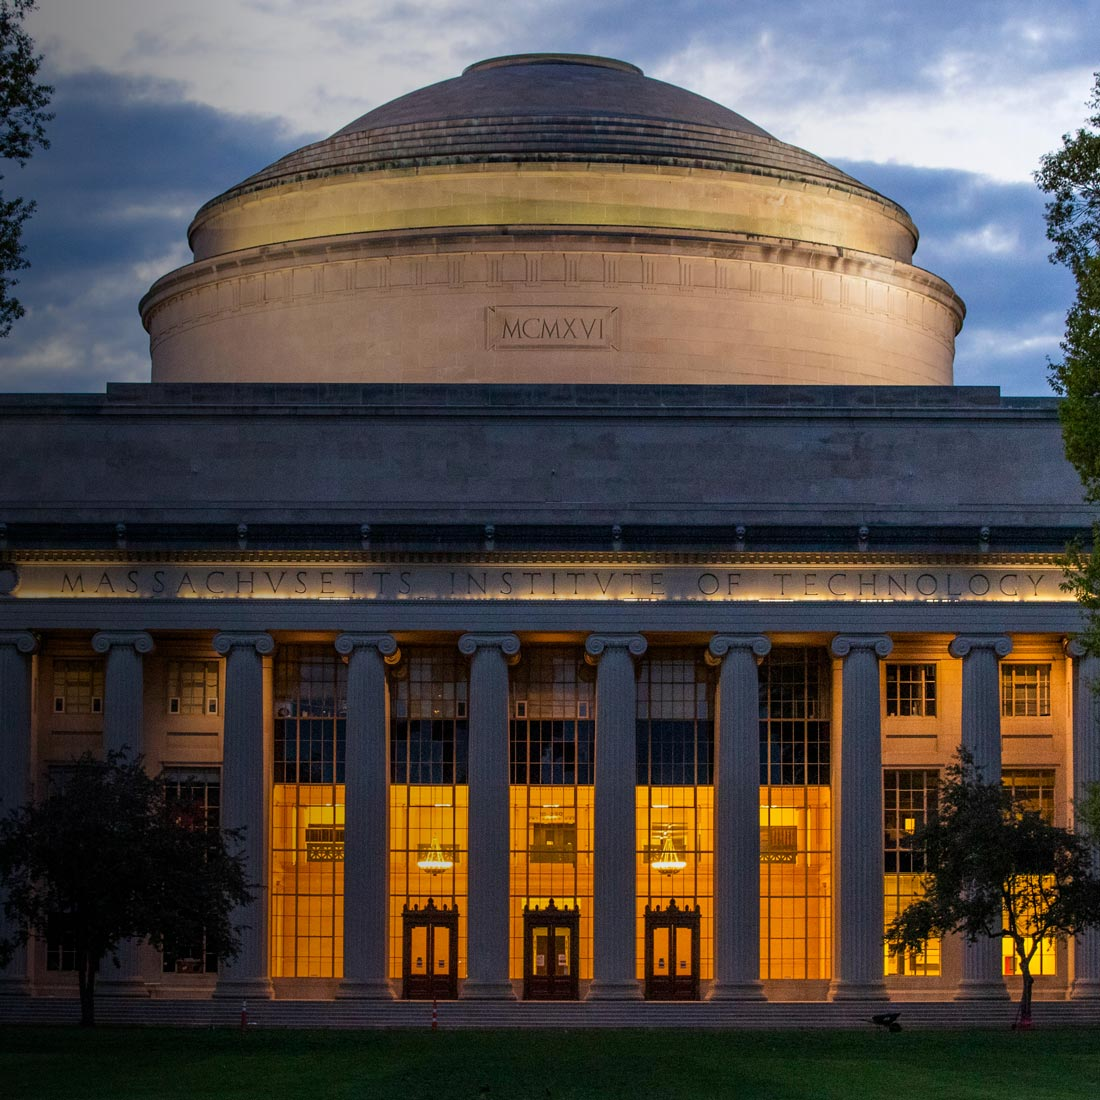 Image of the MIT Dome in Killian Court